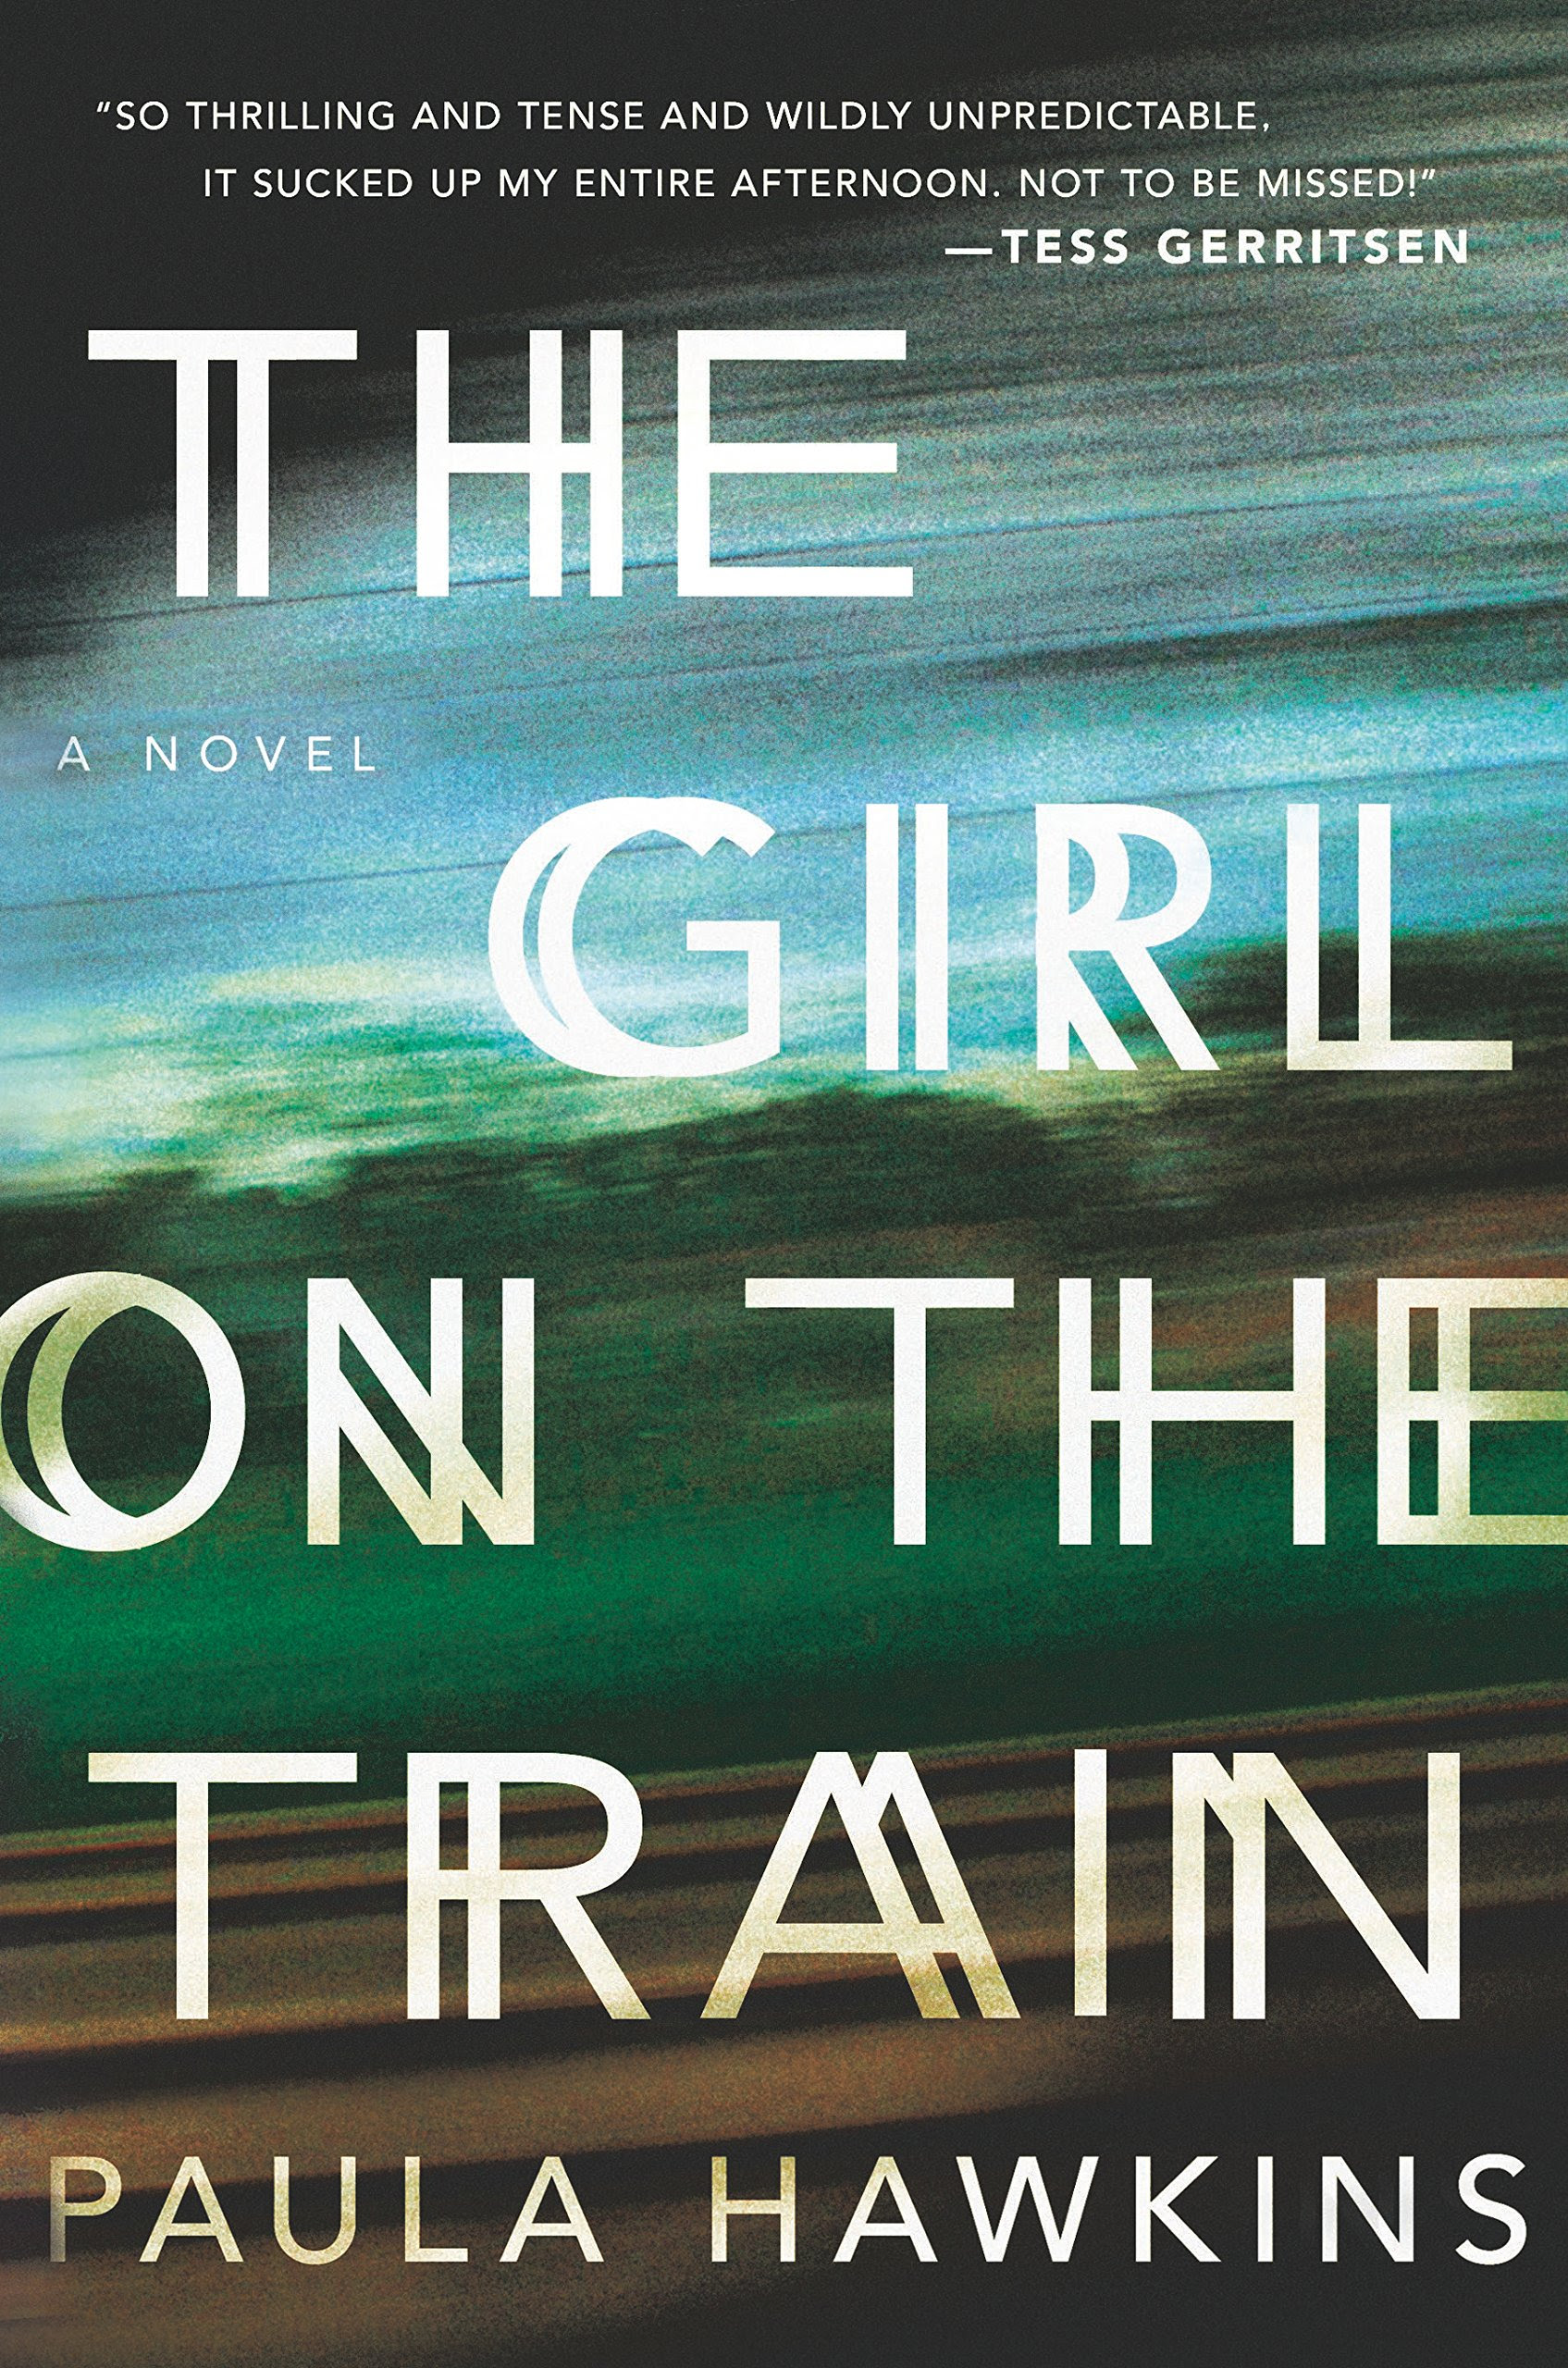 http://zenwahm.com/wp-content/uploads/2015/02/the-girl-on-the-train.jpg